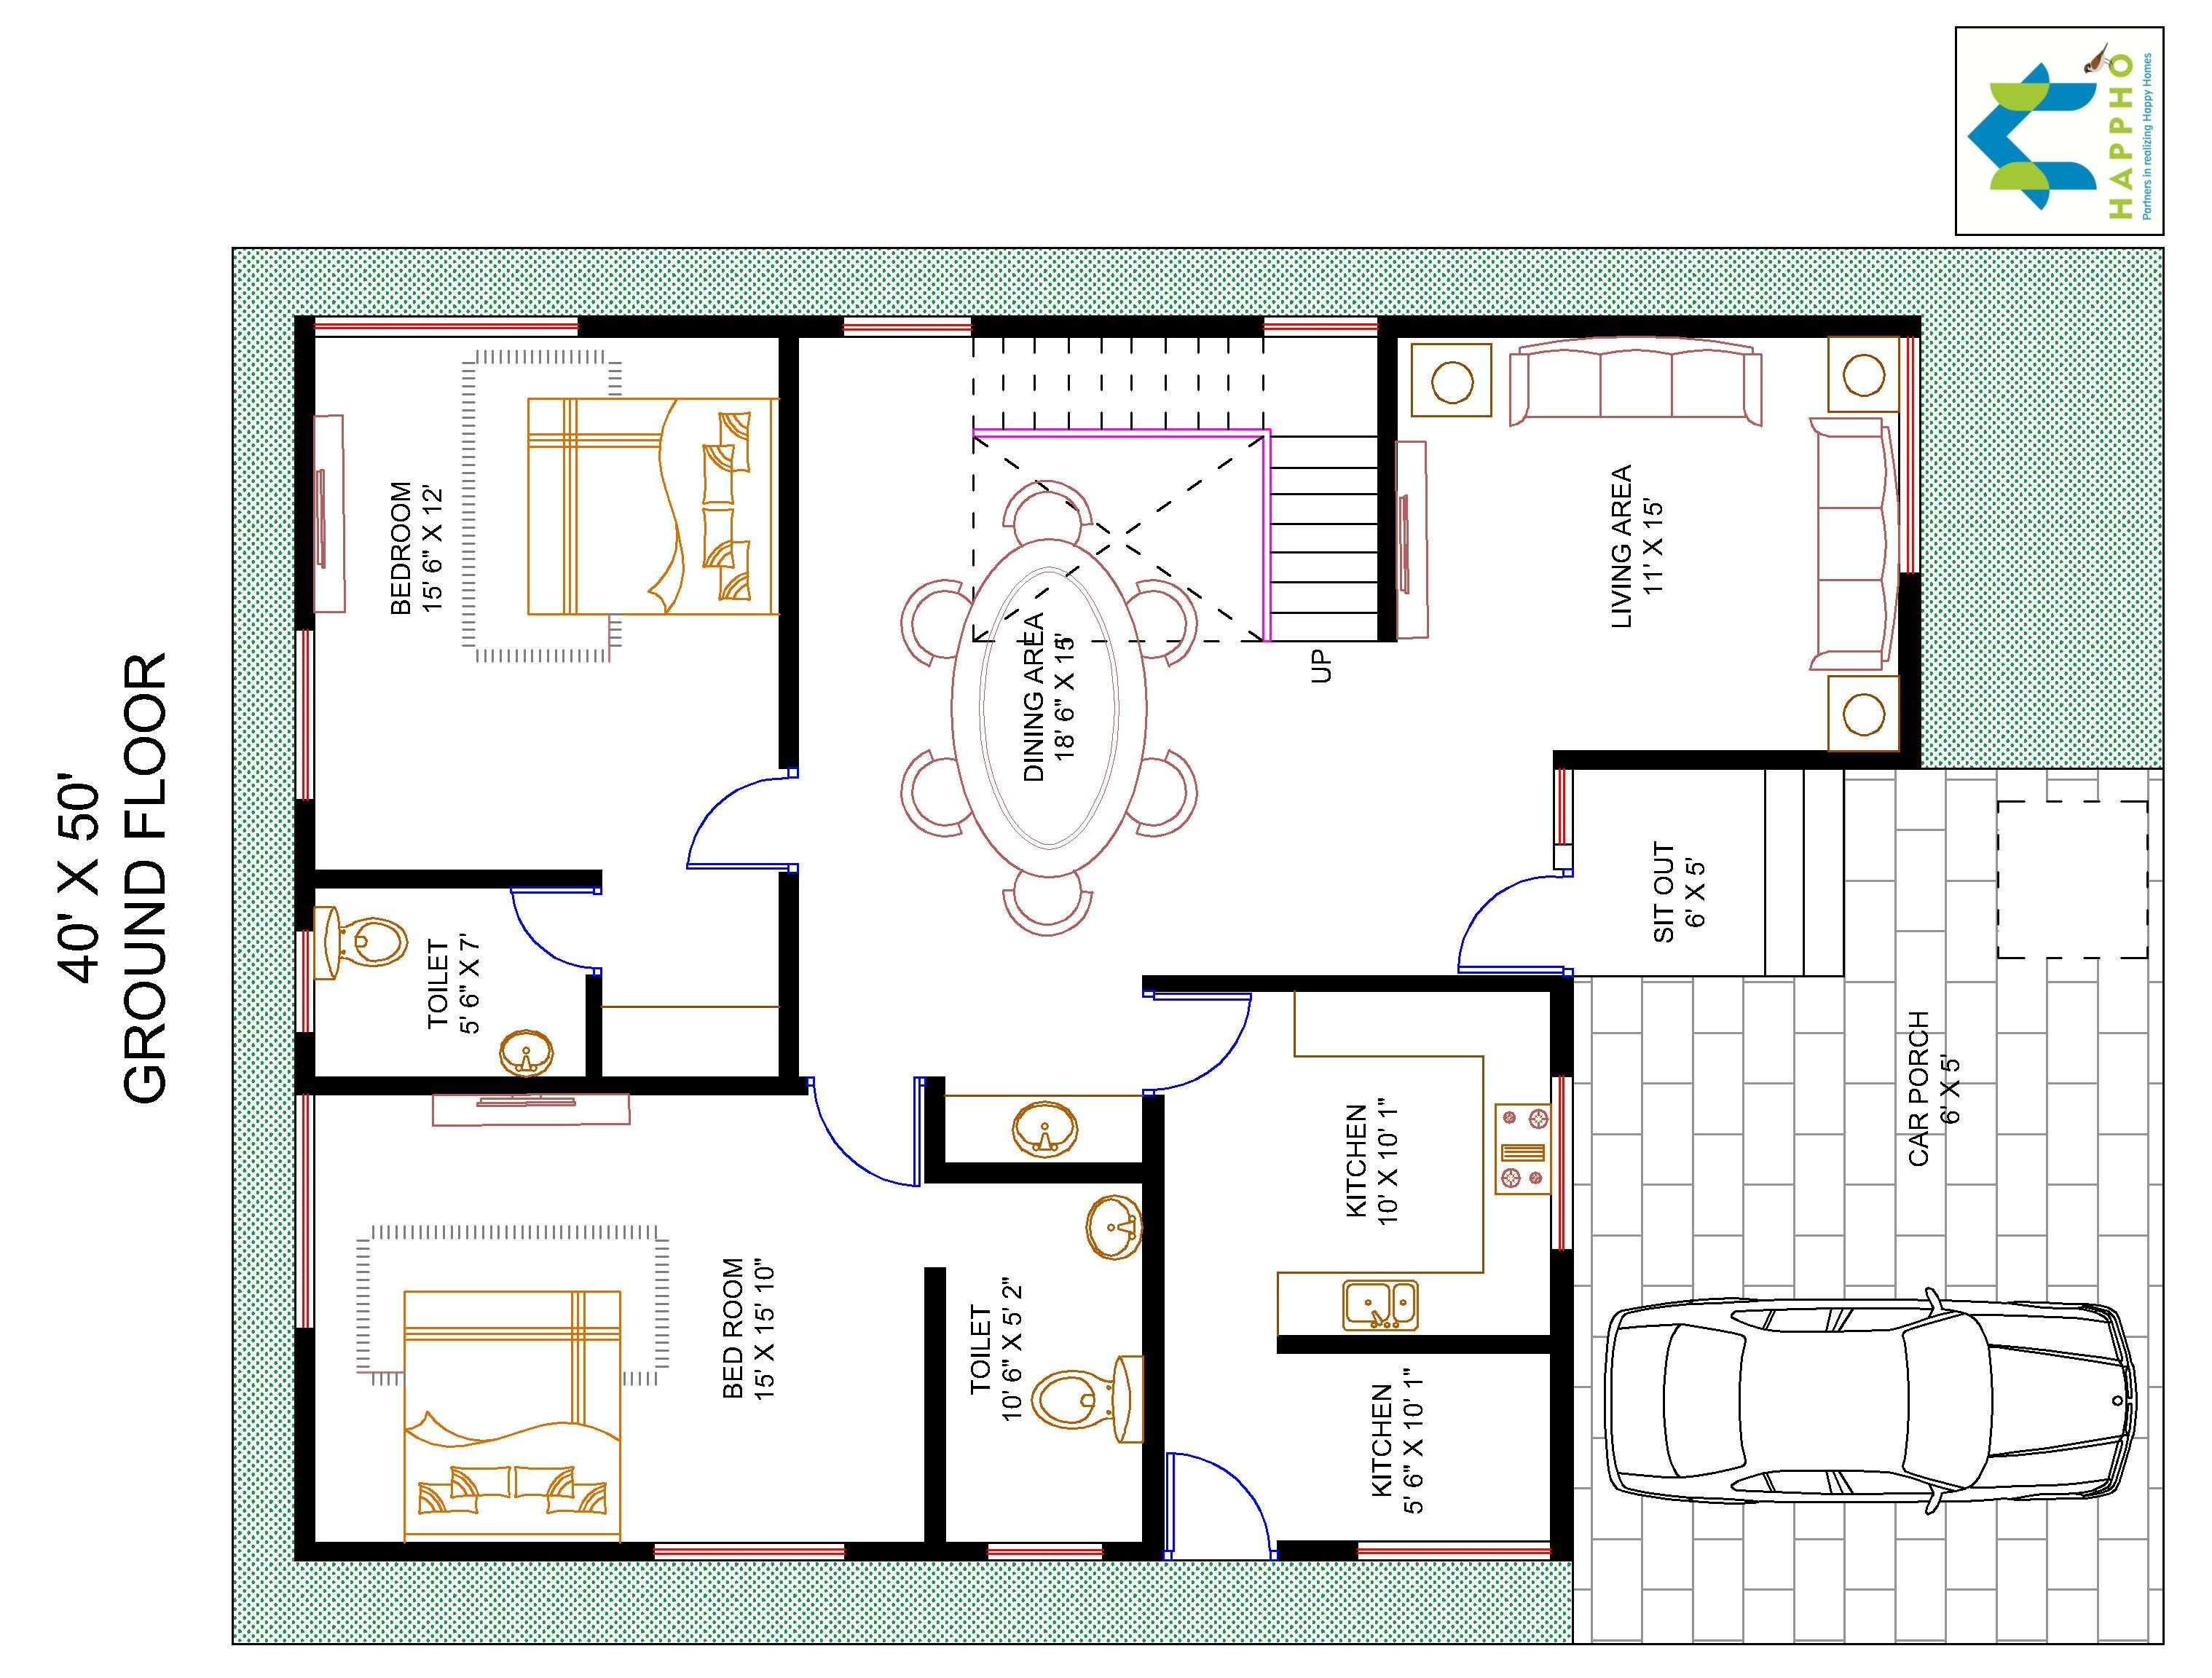 4 bhk floor plan for 40 x 50 plot 2000 square feet 222